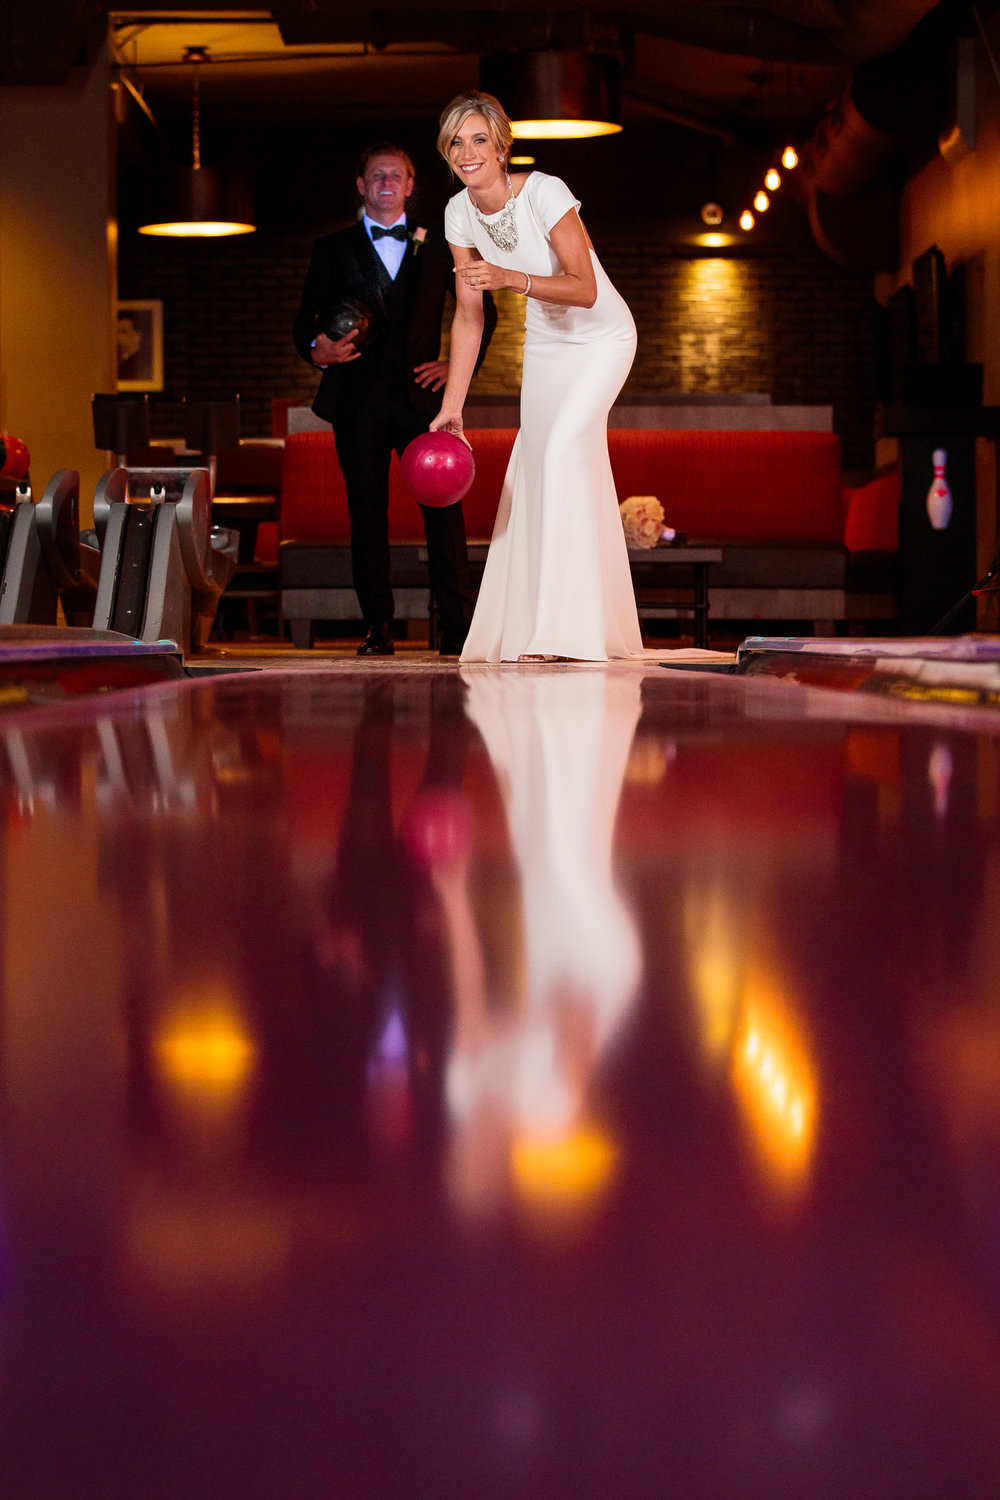 Robb McCormick Photography - Wedding Photographer (12 of 128).jpg